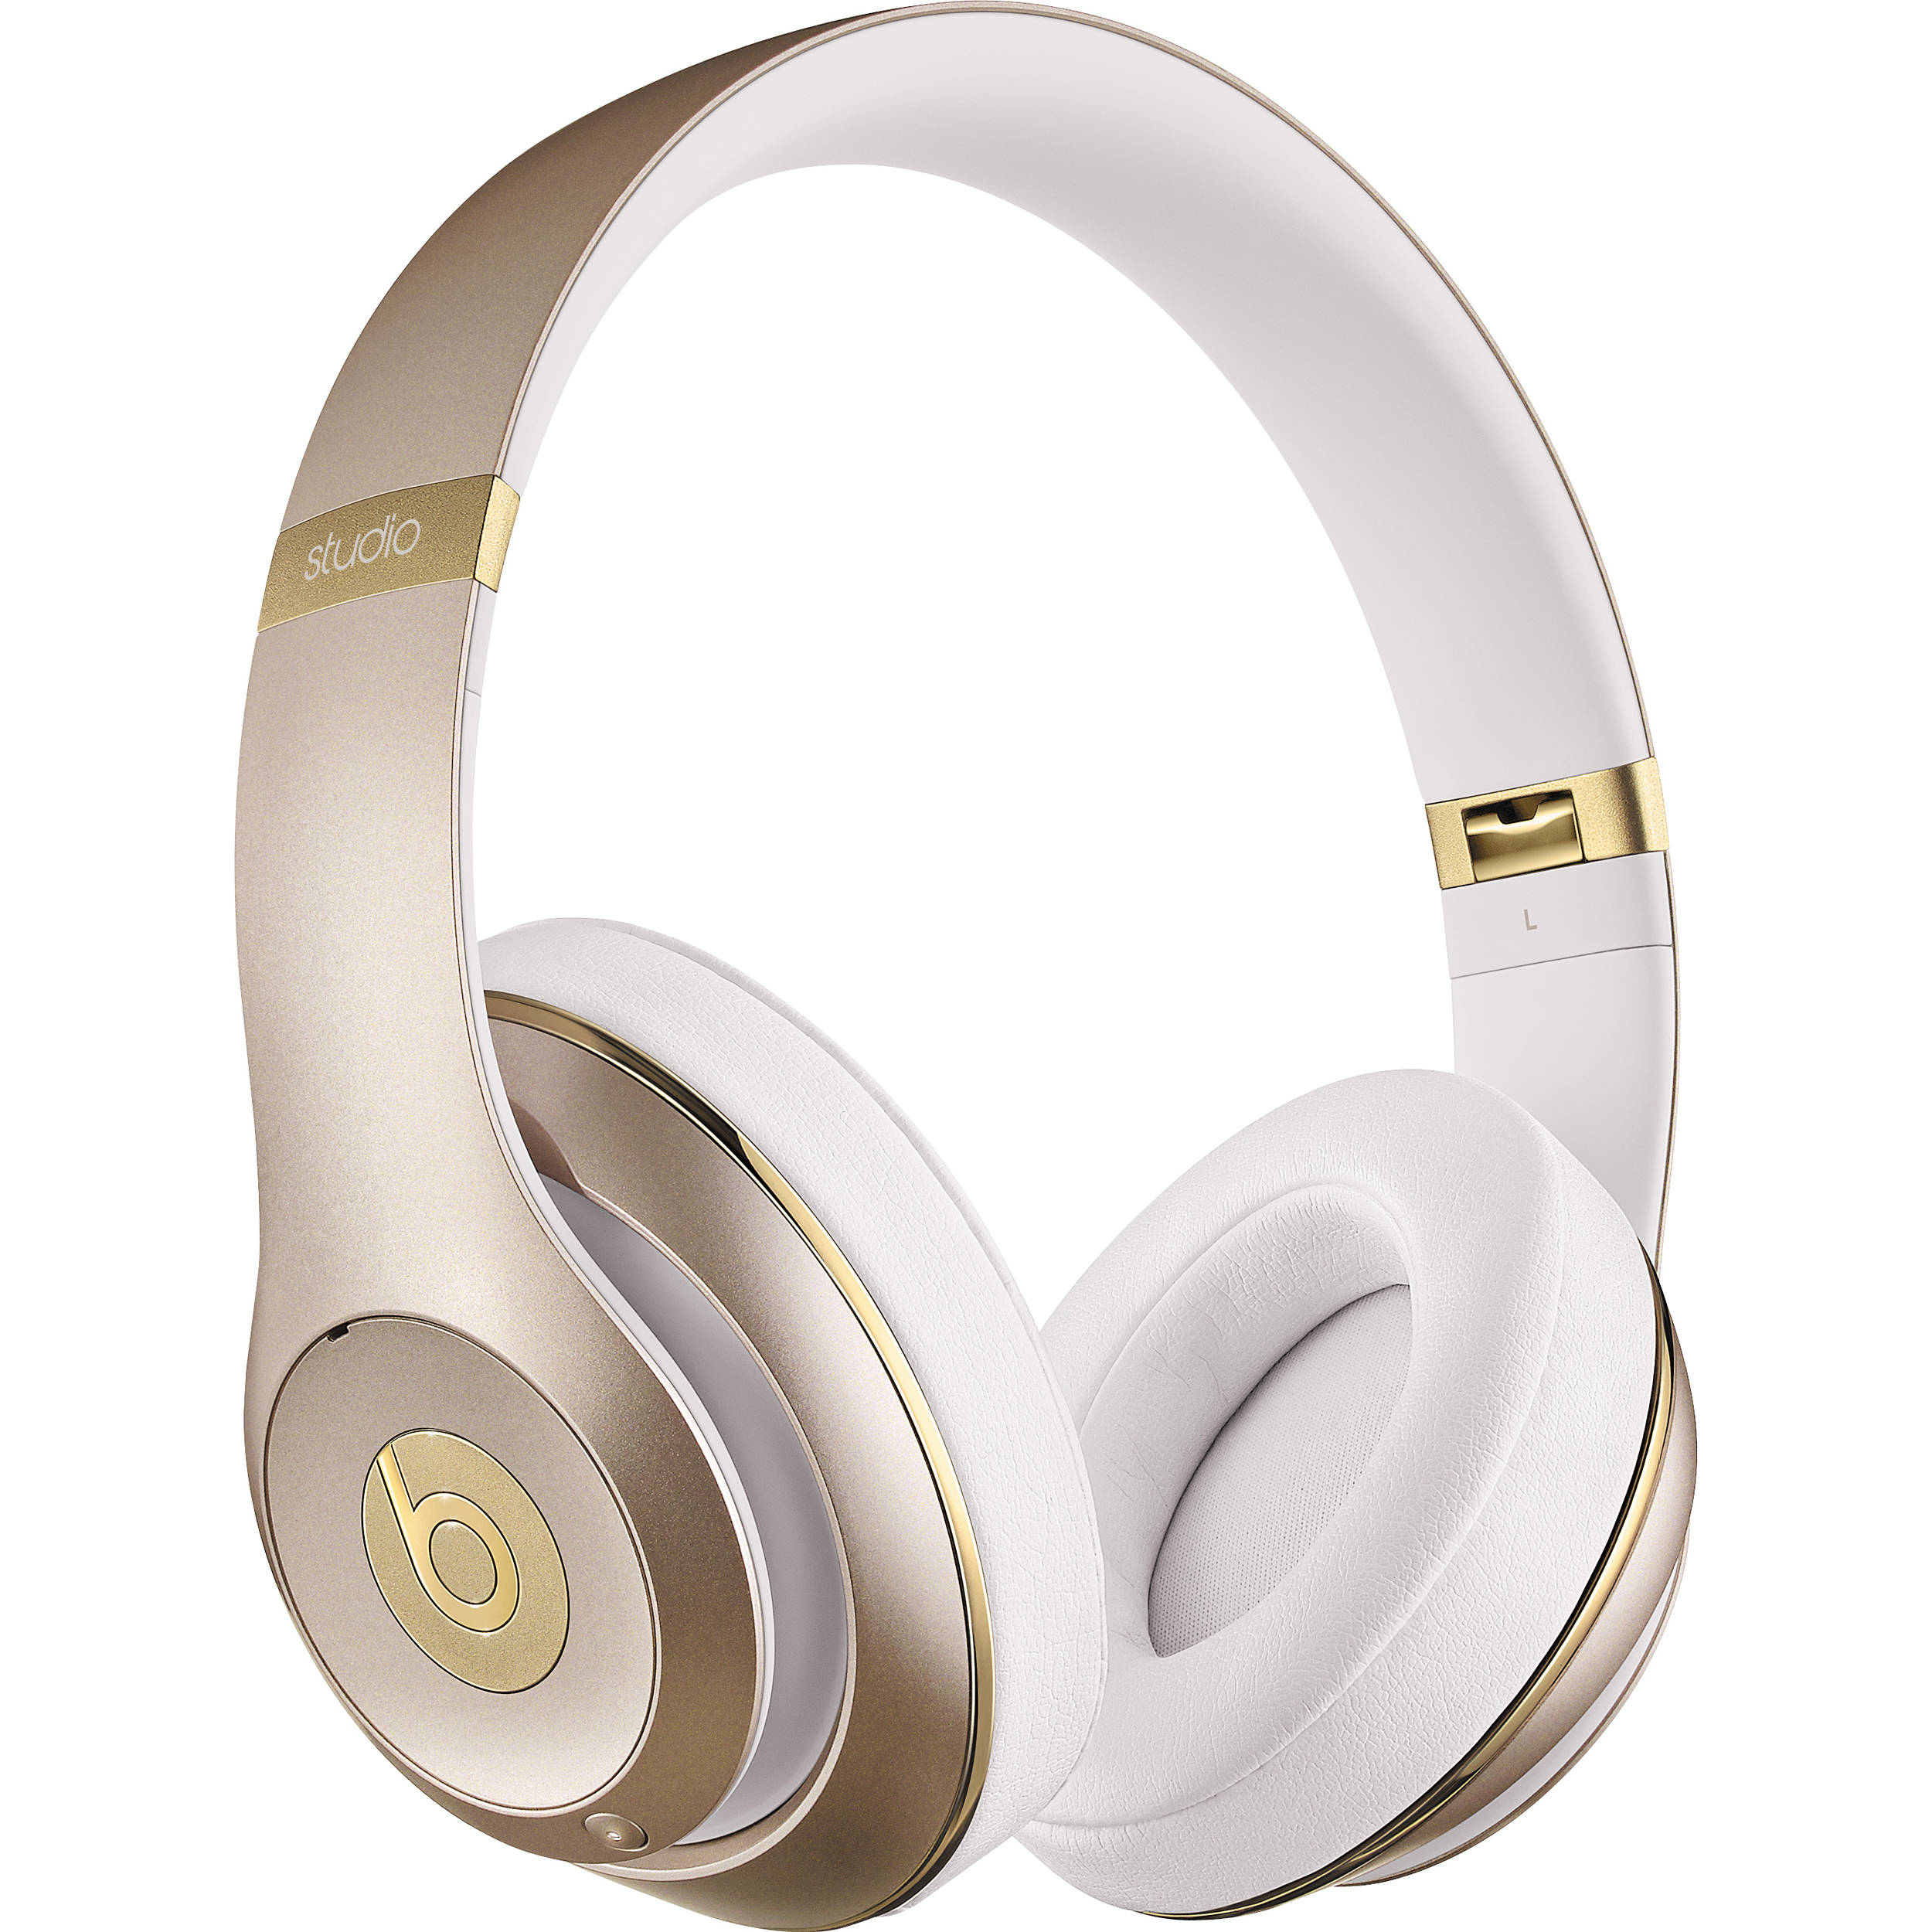 Beats by Dr. Dre Studio 2.0 Over-Ear Wired Headphones MHC12AM/A